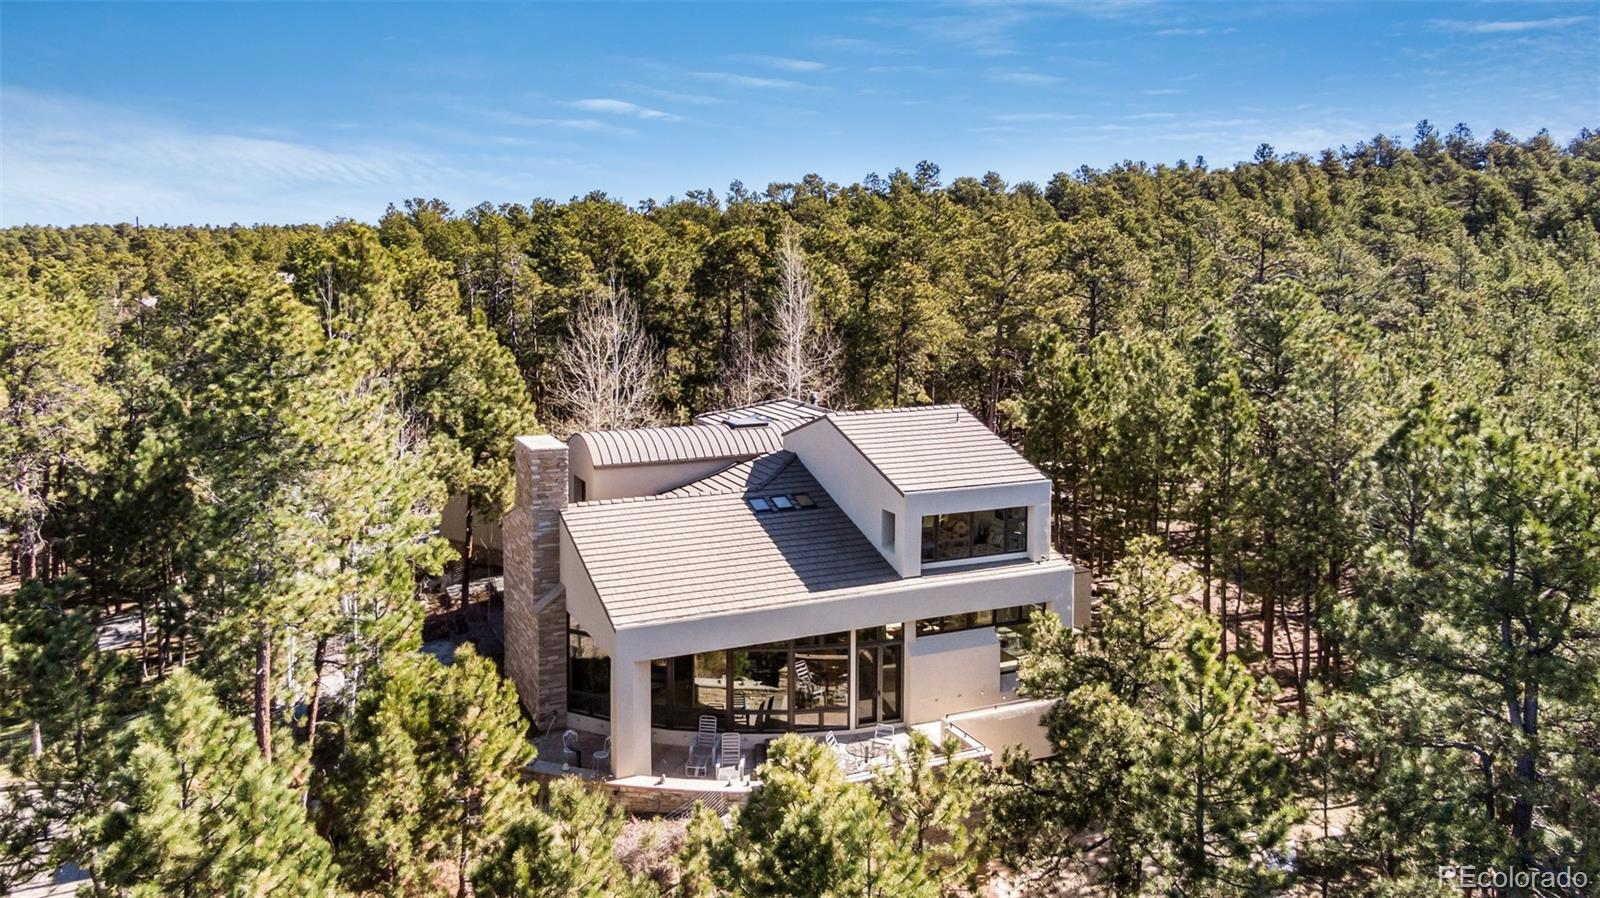 Situated at the end of a cul-de-sac, surrounded by 2.5 acres of Ponderosa pines and stunning views of Pikes Peak, this 6,276 sq. ft. custom home's inspired architecture blends modern and rustic elements to bring the outdoors in. Craftsmanship and award winning design present in every detail of this 4 bd, 5 ba home. Open concept living with vaulted ceiling, stone fireplace, wall of windows with views of Pikes Peak. Custom eat-in kitchen complete with Ash cabinetry, double oven, convection oven, pantry, island with breakfast bar. Formal dining room boasts a fireplace and built-ins. Second story master retreat includes two sitting areas, see-through fire, five piece bath, and endless views. Walk-out basement has large family room, gym, and 3 additional bedrooms and baths. Perfect for entertaining or relaxing, outdoor seating areas are present on all three levels including wrap around patio with fireplace on main level. 10+ acres of total privacy to the east (Ask about adjacent 2.65 acres to the south!). Low heating and utility costs, low taxes, and a tiny HOA fee. This spectacular home is only minutes from 1-25, but feels a world away.